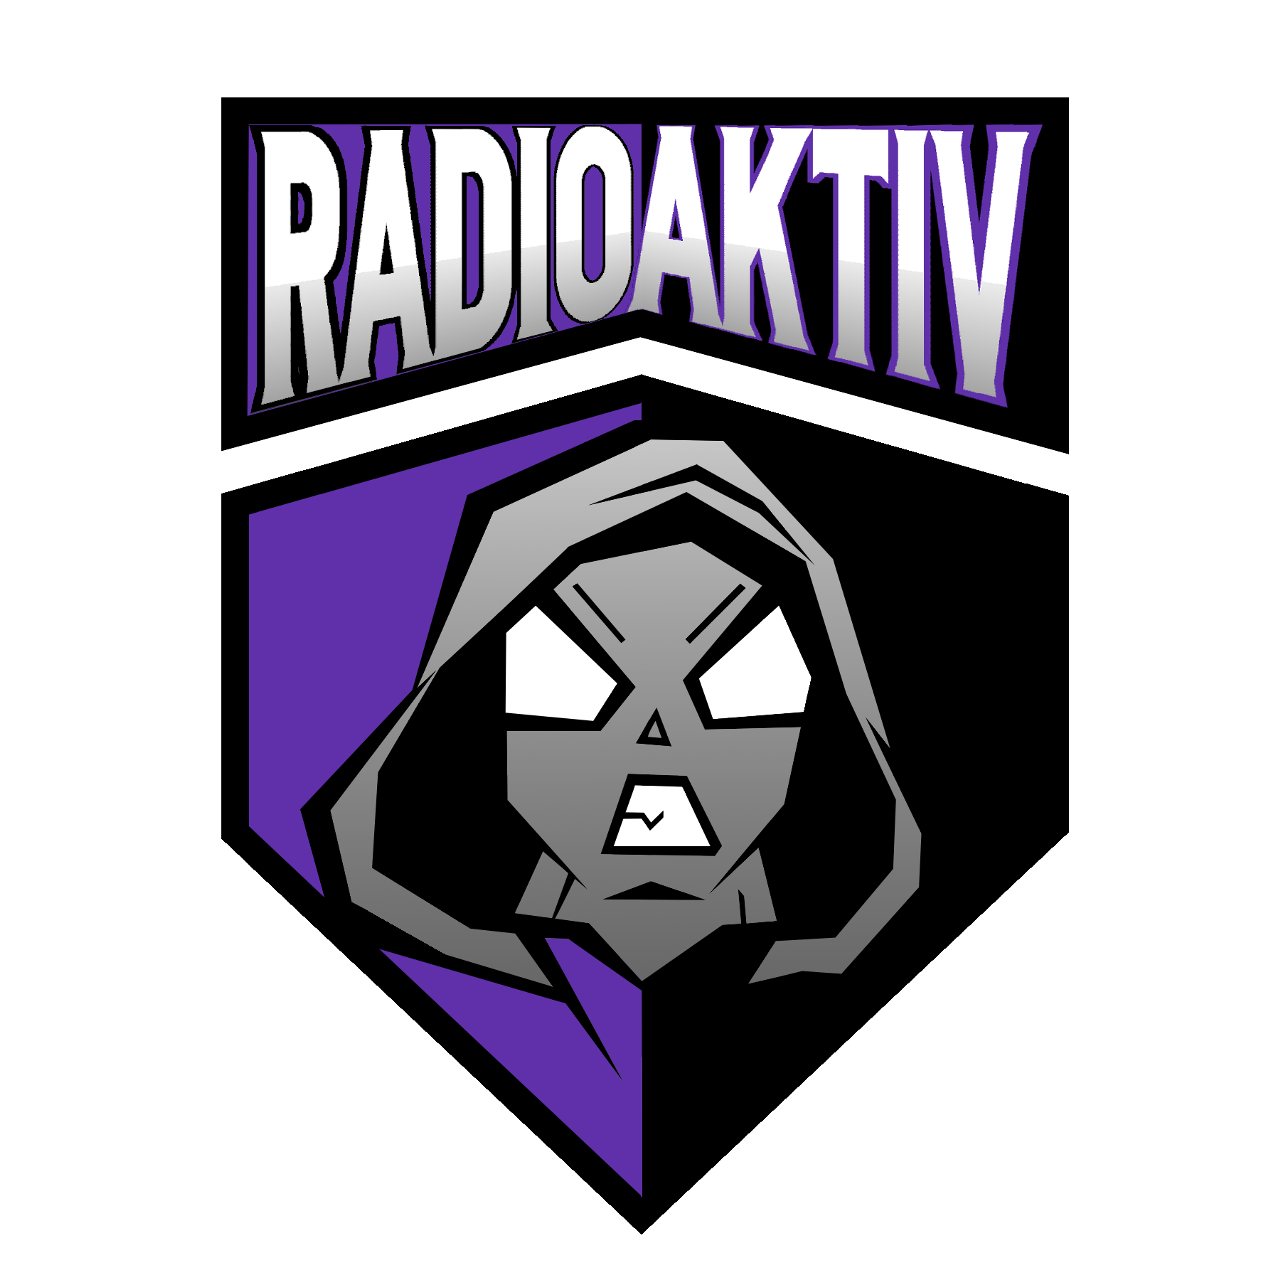 Radioaktiv Logo Ashes of Creation Gilde